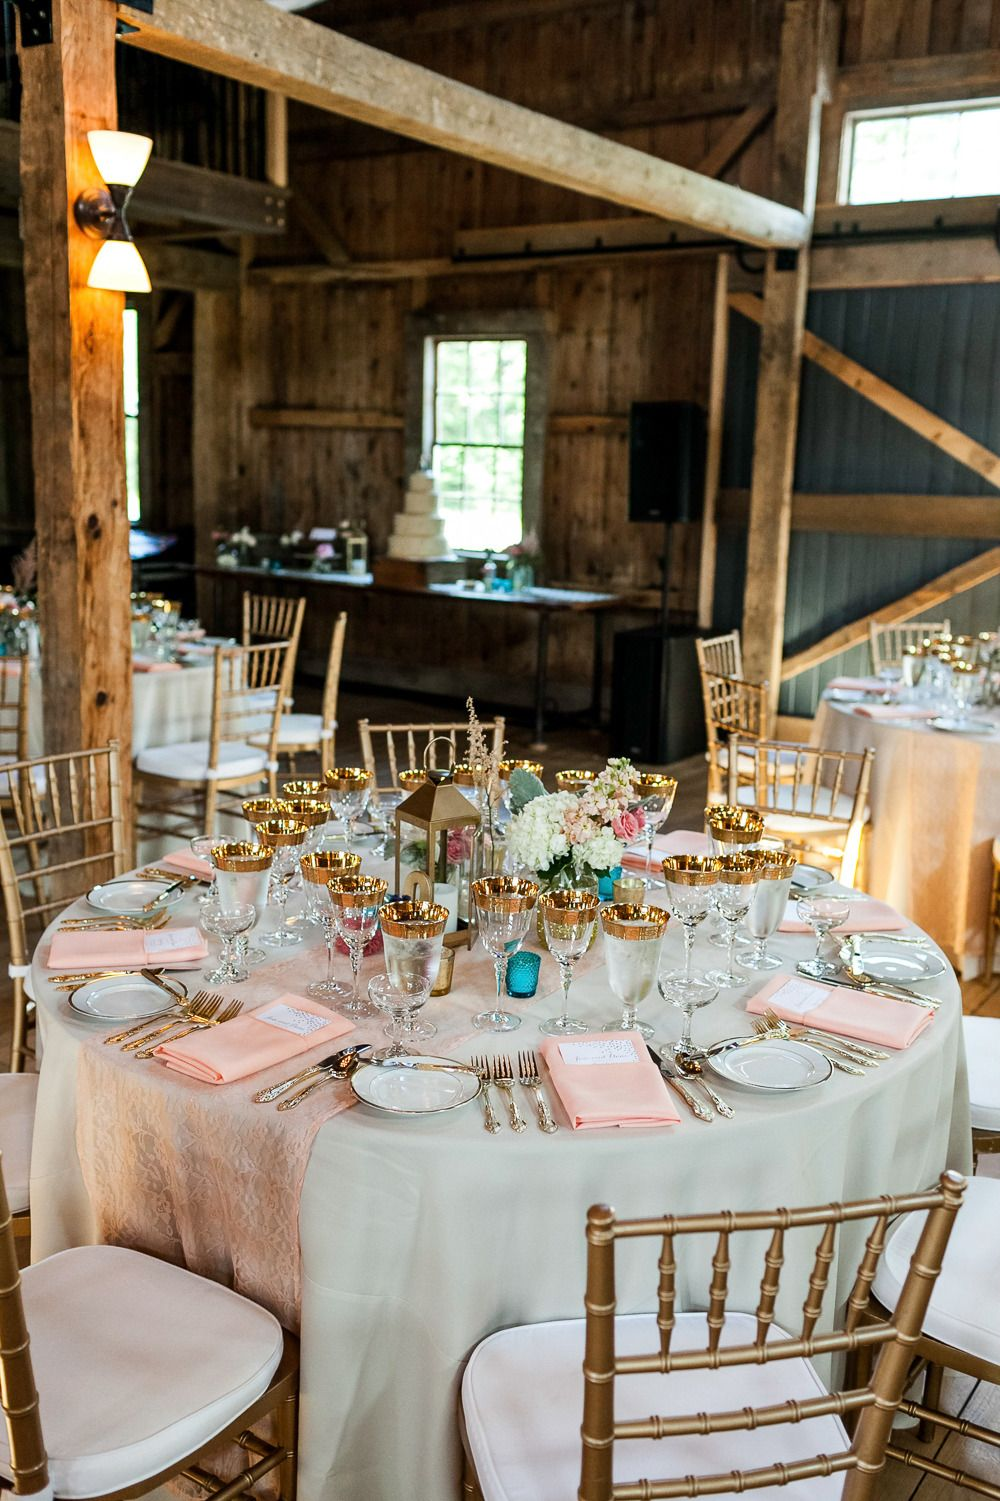 Maine Wedding at The Barn at Flanagan Farm from A Brit and A Blonde  Read more - http://www.stylemepretty.com/massachusetts-weddings/2013/11/15/maine-wedding-at-the-barn-at-flanagan-farm-from-a-brit-and-a-blonde/